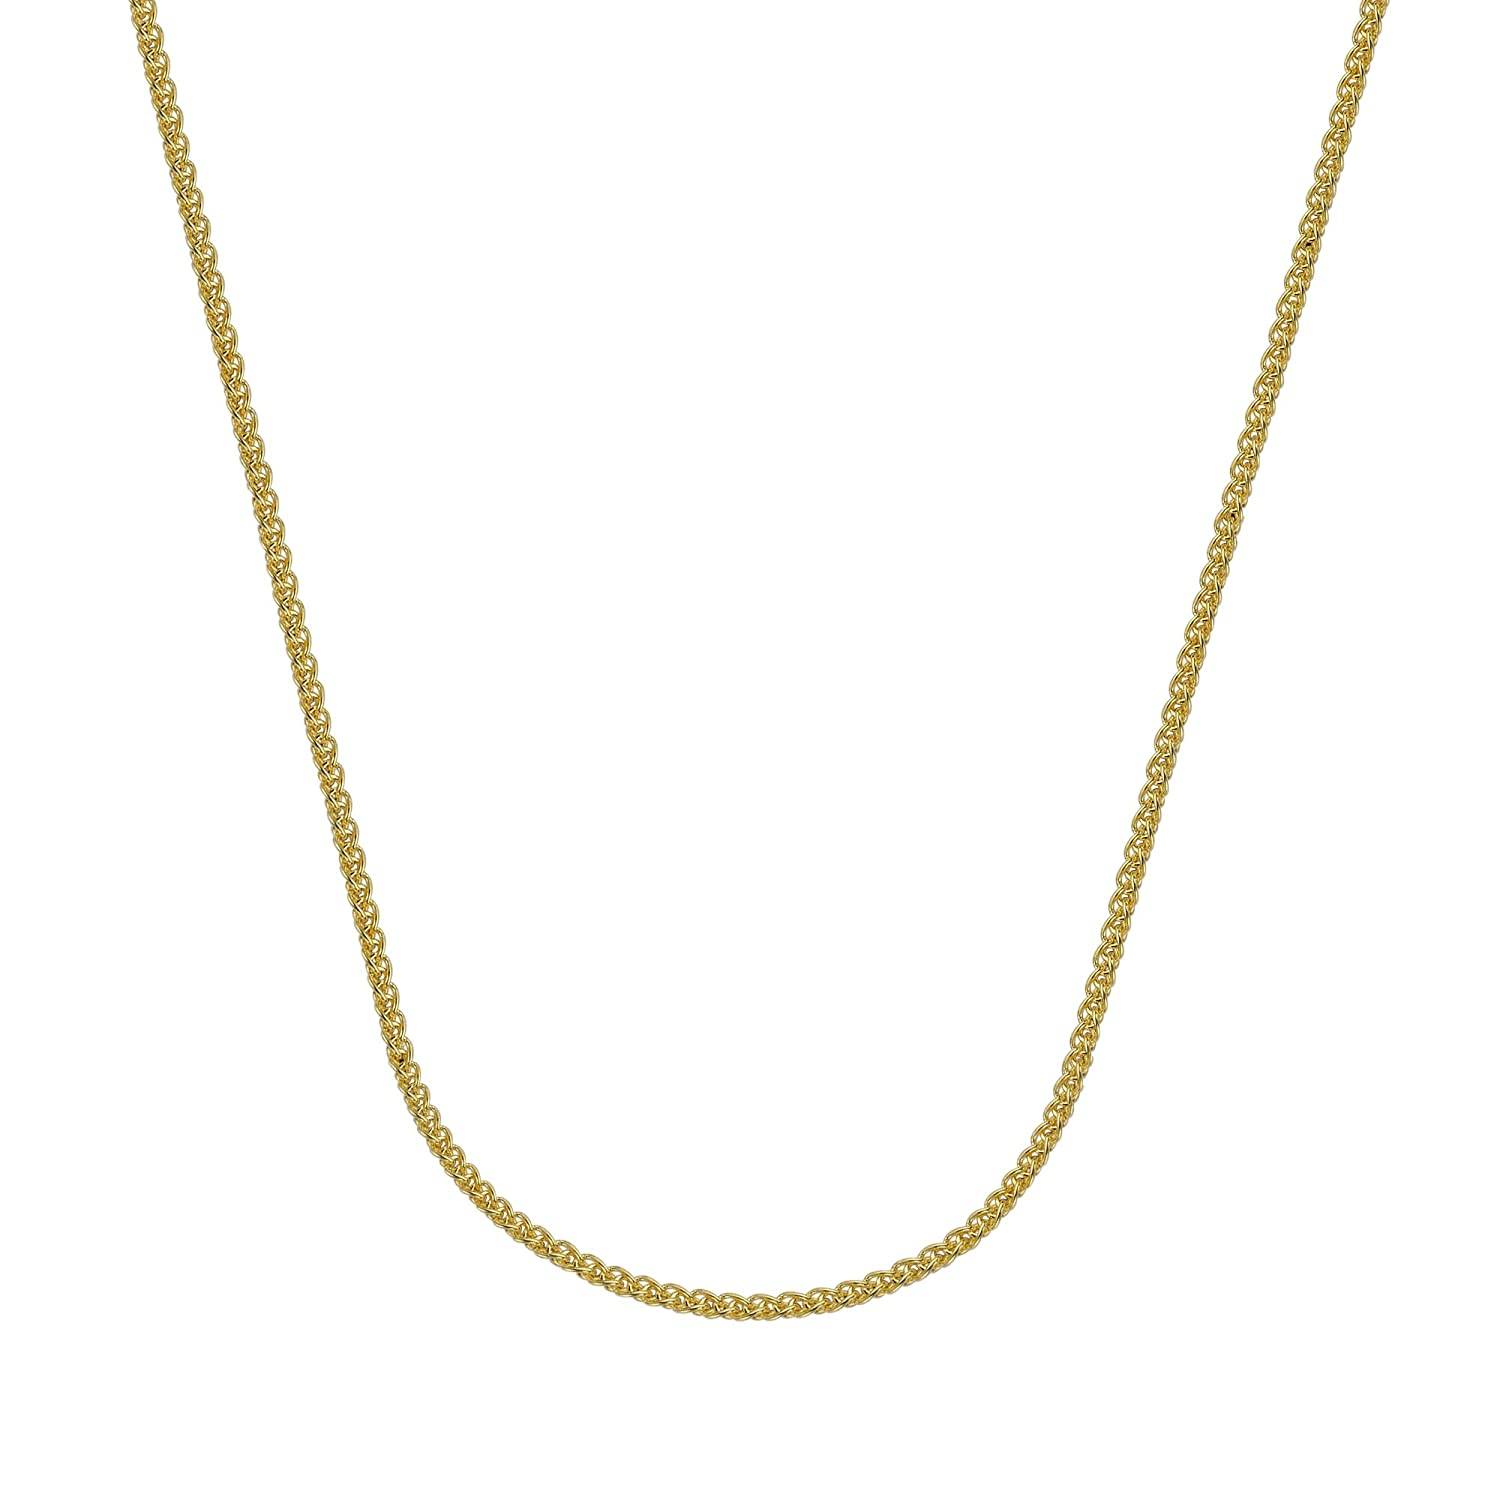 CABLE CHAIN, 18KT GOLD 1.05MM CHAIN , 18 INCHES LONG